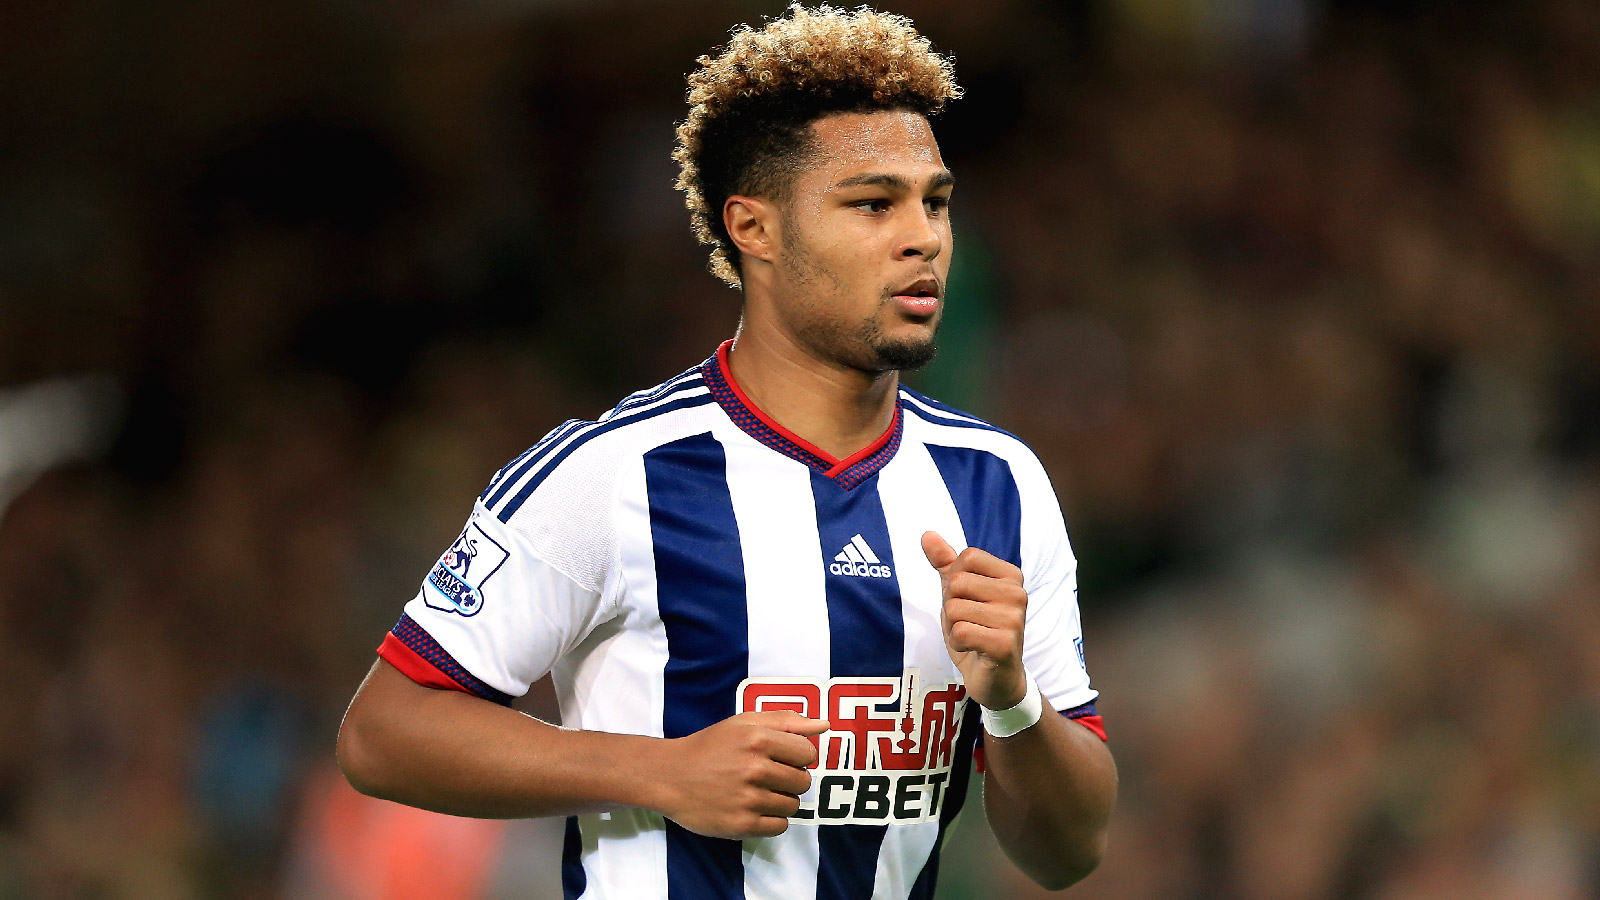 Arsenal to recall midfielder Gnabry from loan at West Brom